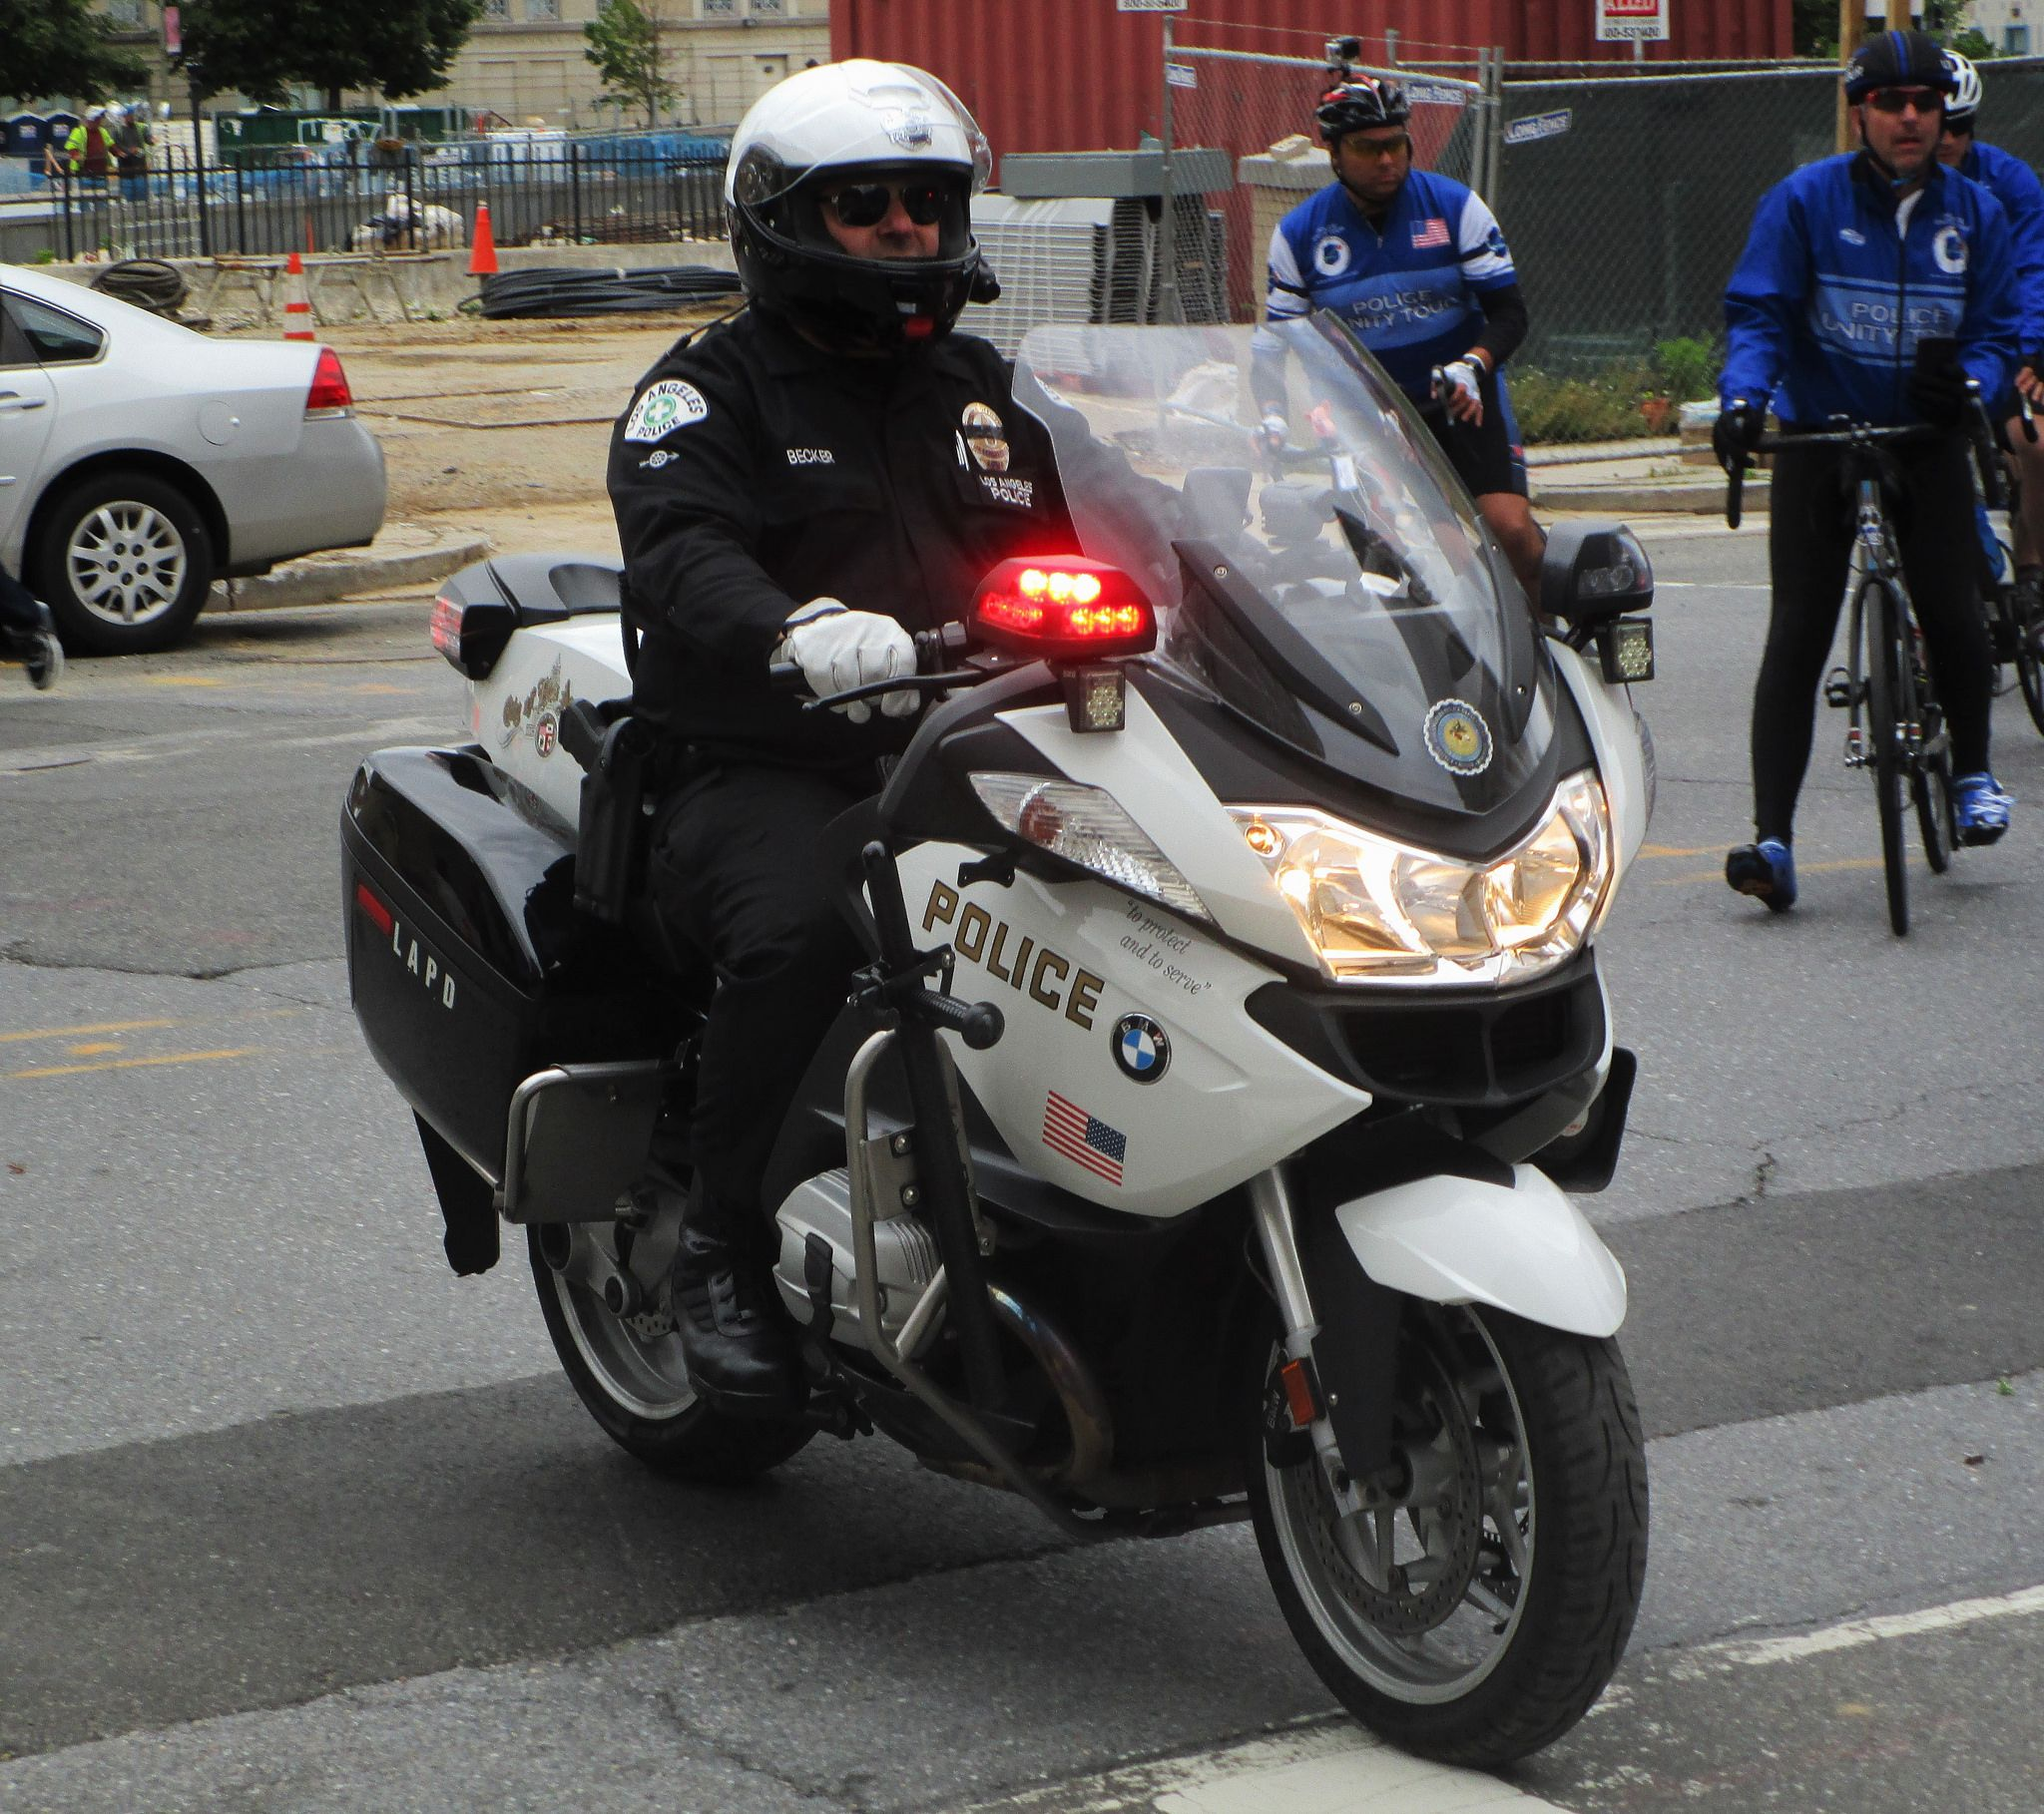 Los Angeles Police Department Bmw R1200rt Motorcycle Los Angeles Police Department Bmw R1200rt Police